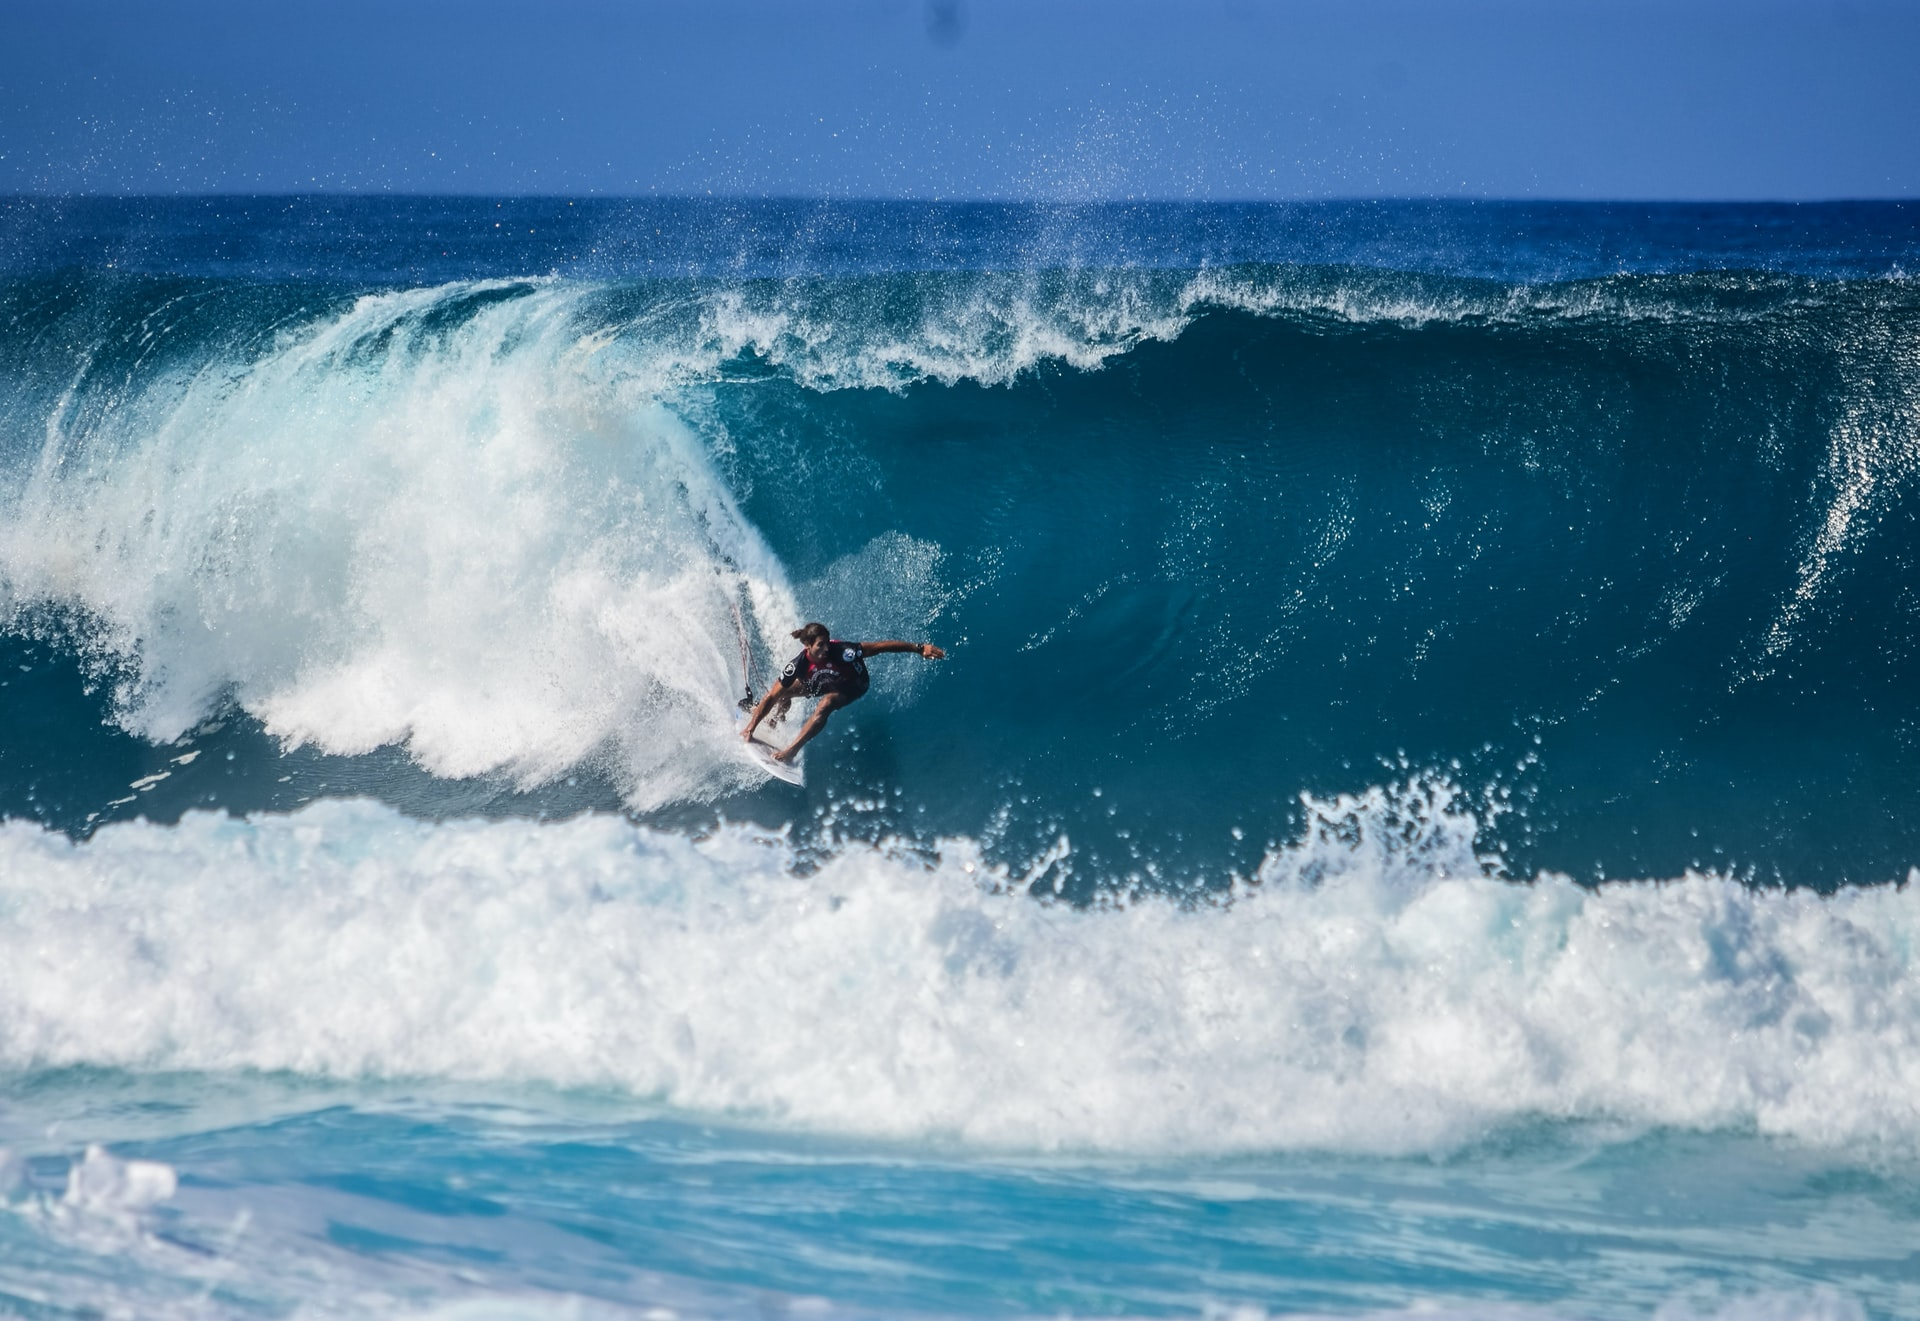 Cities with Great Surfing Spots